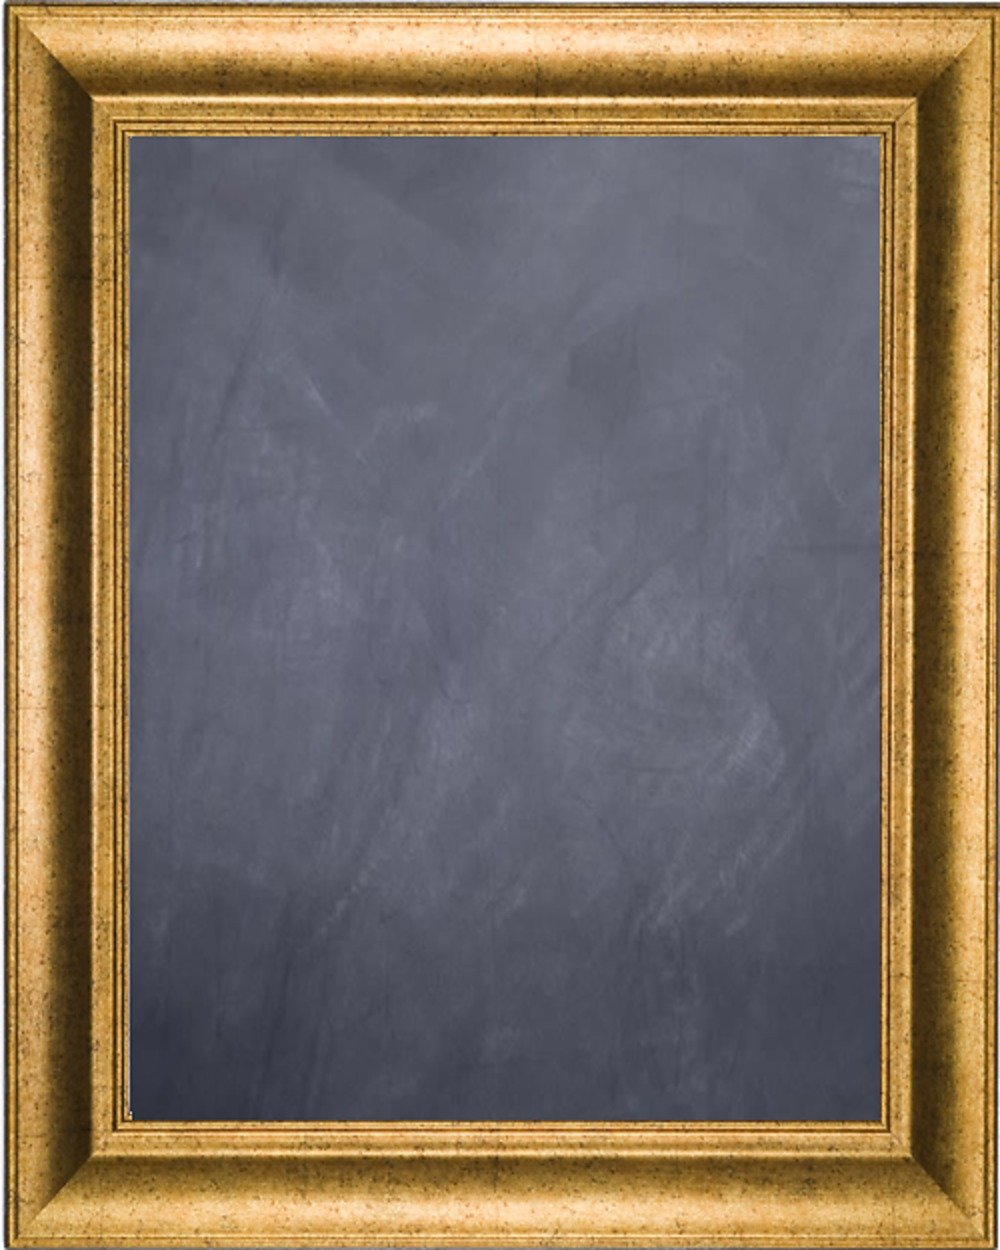 Framed Chalkboard 24'' x 36'' - with Antique Gold Finish Frame